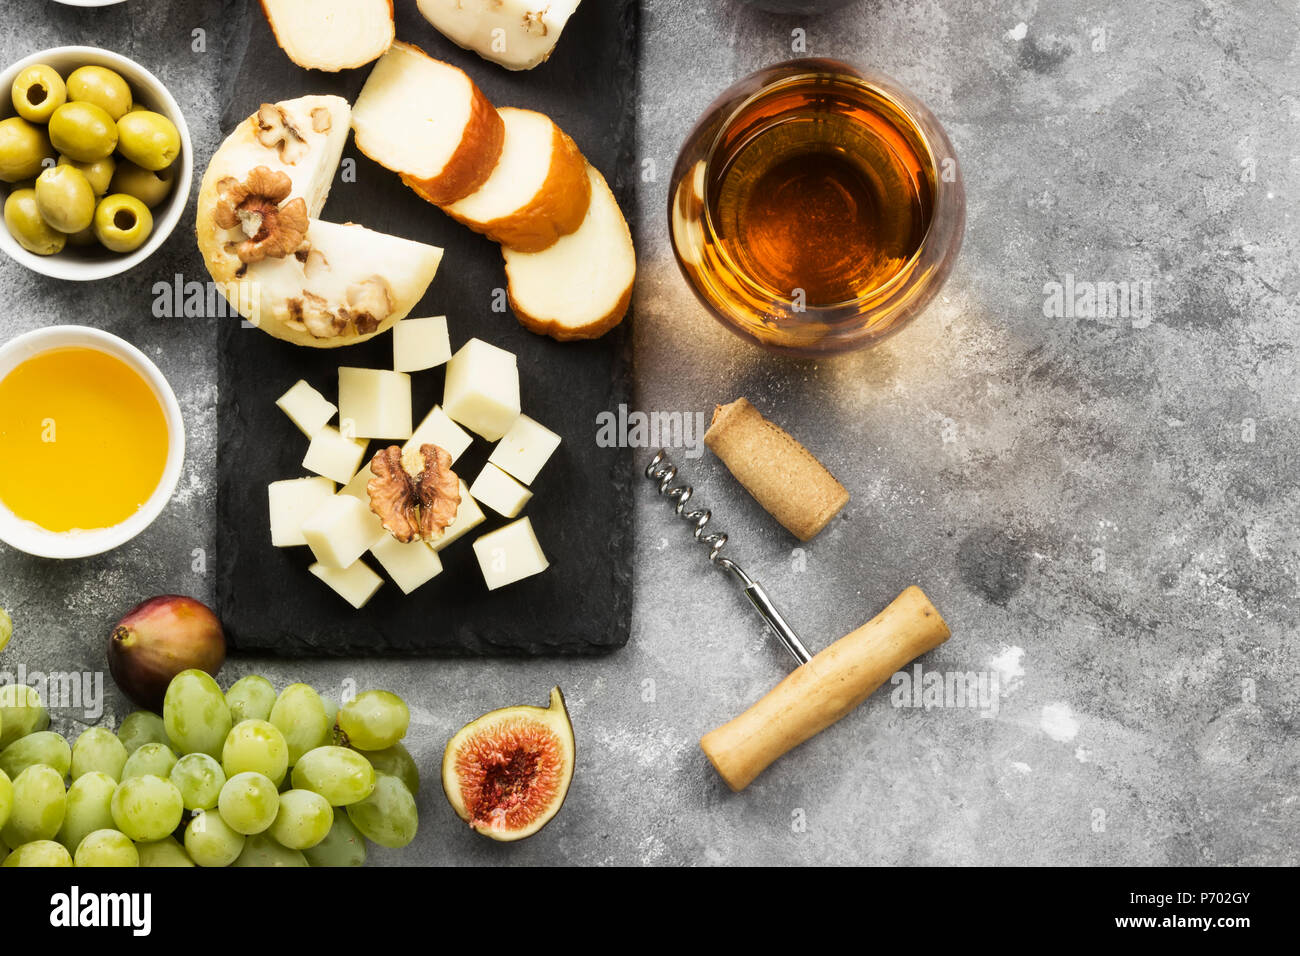 Snacks with wine - various types of cheeses, figs, nuts, honey, grapes on a gray background. Top view, copy space. Food background Stock Photo